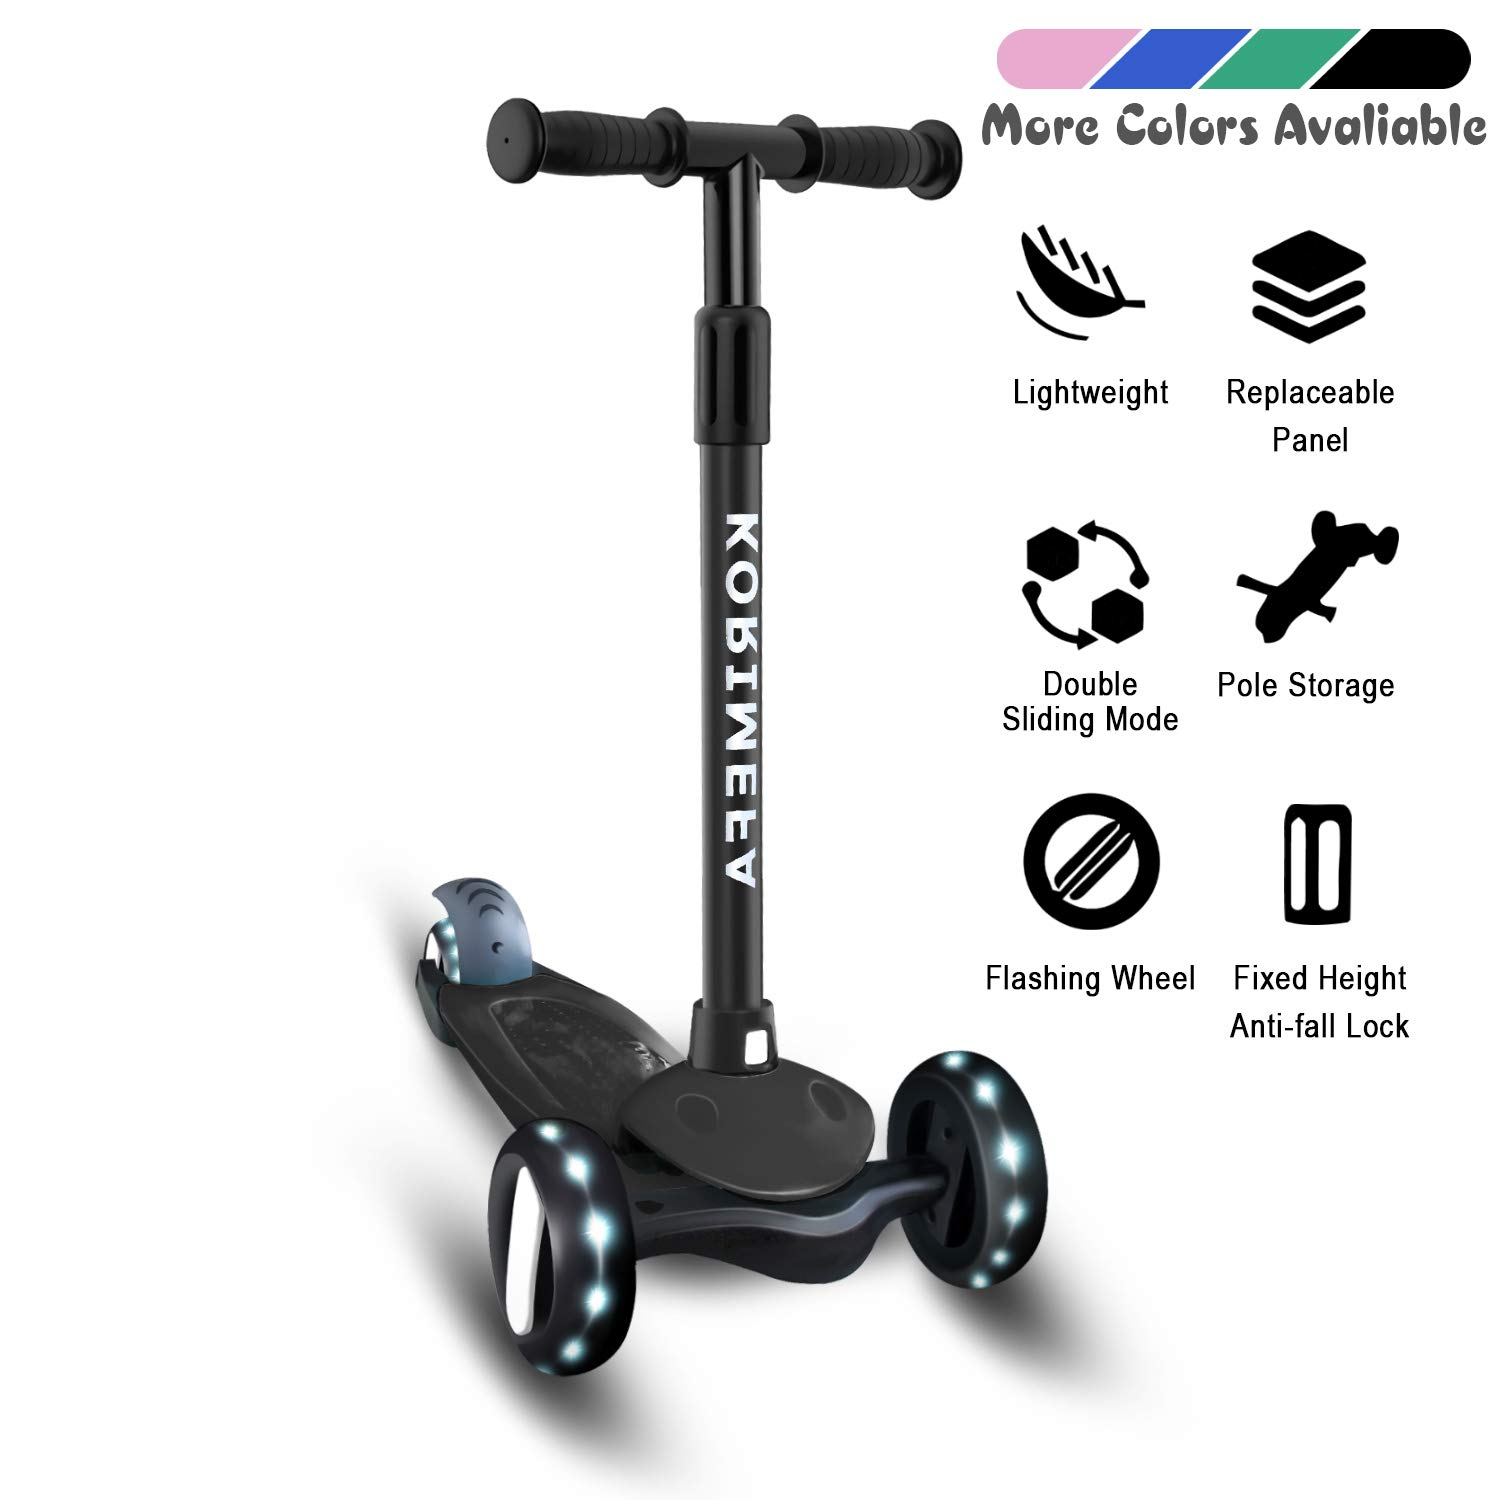 Kids Scooters Kick Scooter for Kids 3 Wheels Scooter Girls Boys Toddler Scooters 4 Adjustable Height Lean to Steer with PU Flashing Wheels Scooter for Children from 2 to 6 Years Old by Yufu